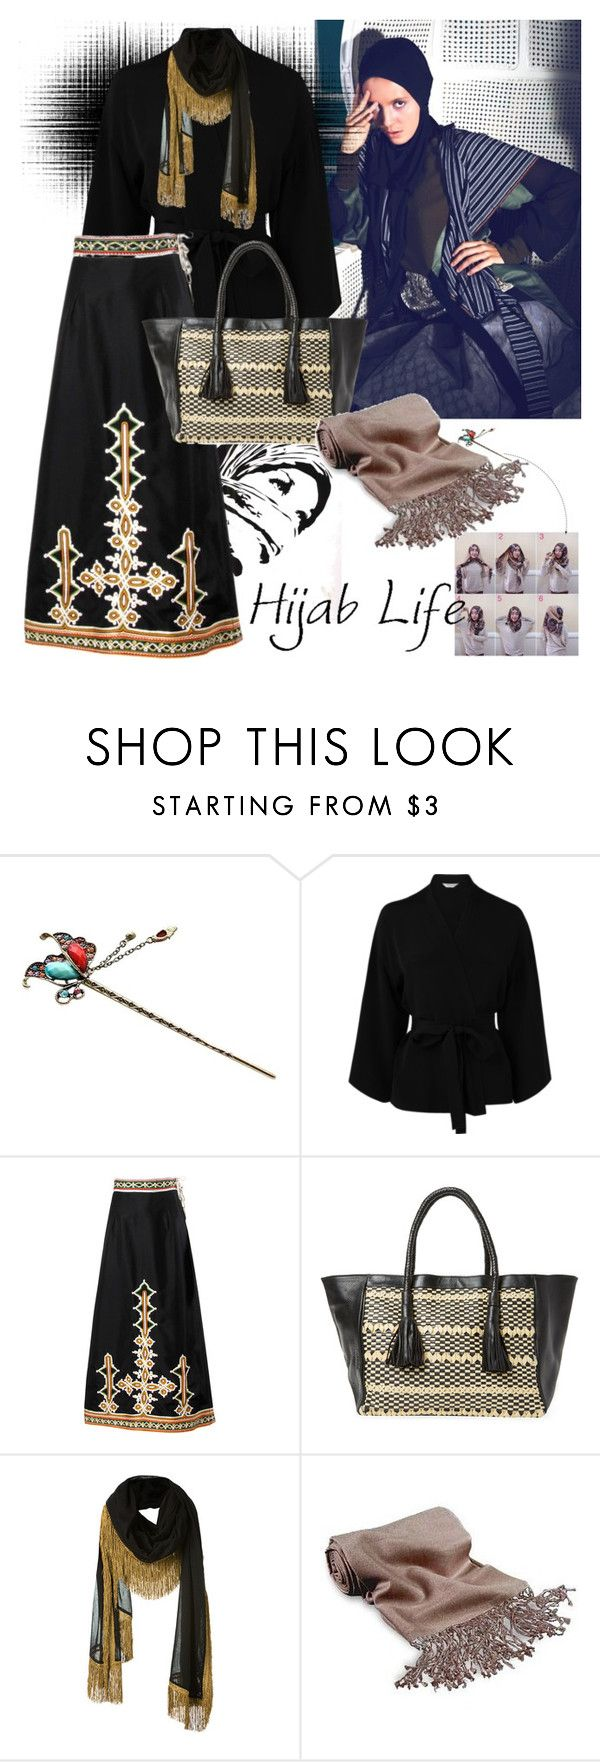 """Hijab Of The Day"" by rizqi-hanindya-putri ❤ liked on Polyvore featuring L.K.Bennett, Antik Batik, Yves Saint Laurent, Forzieri, love, muslim and hijab"